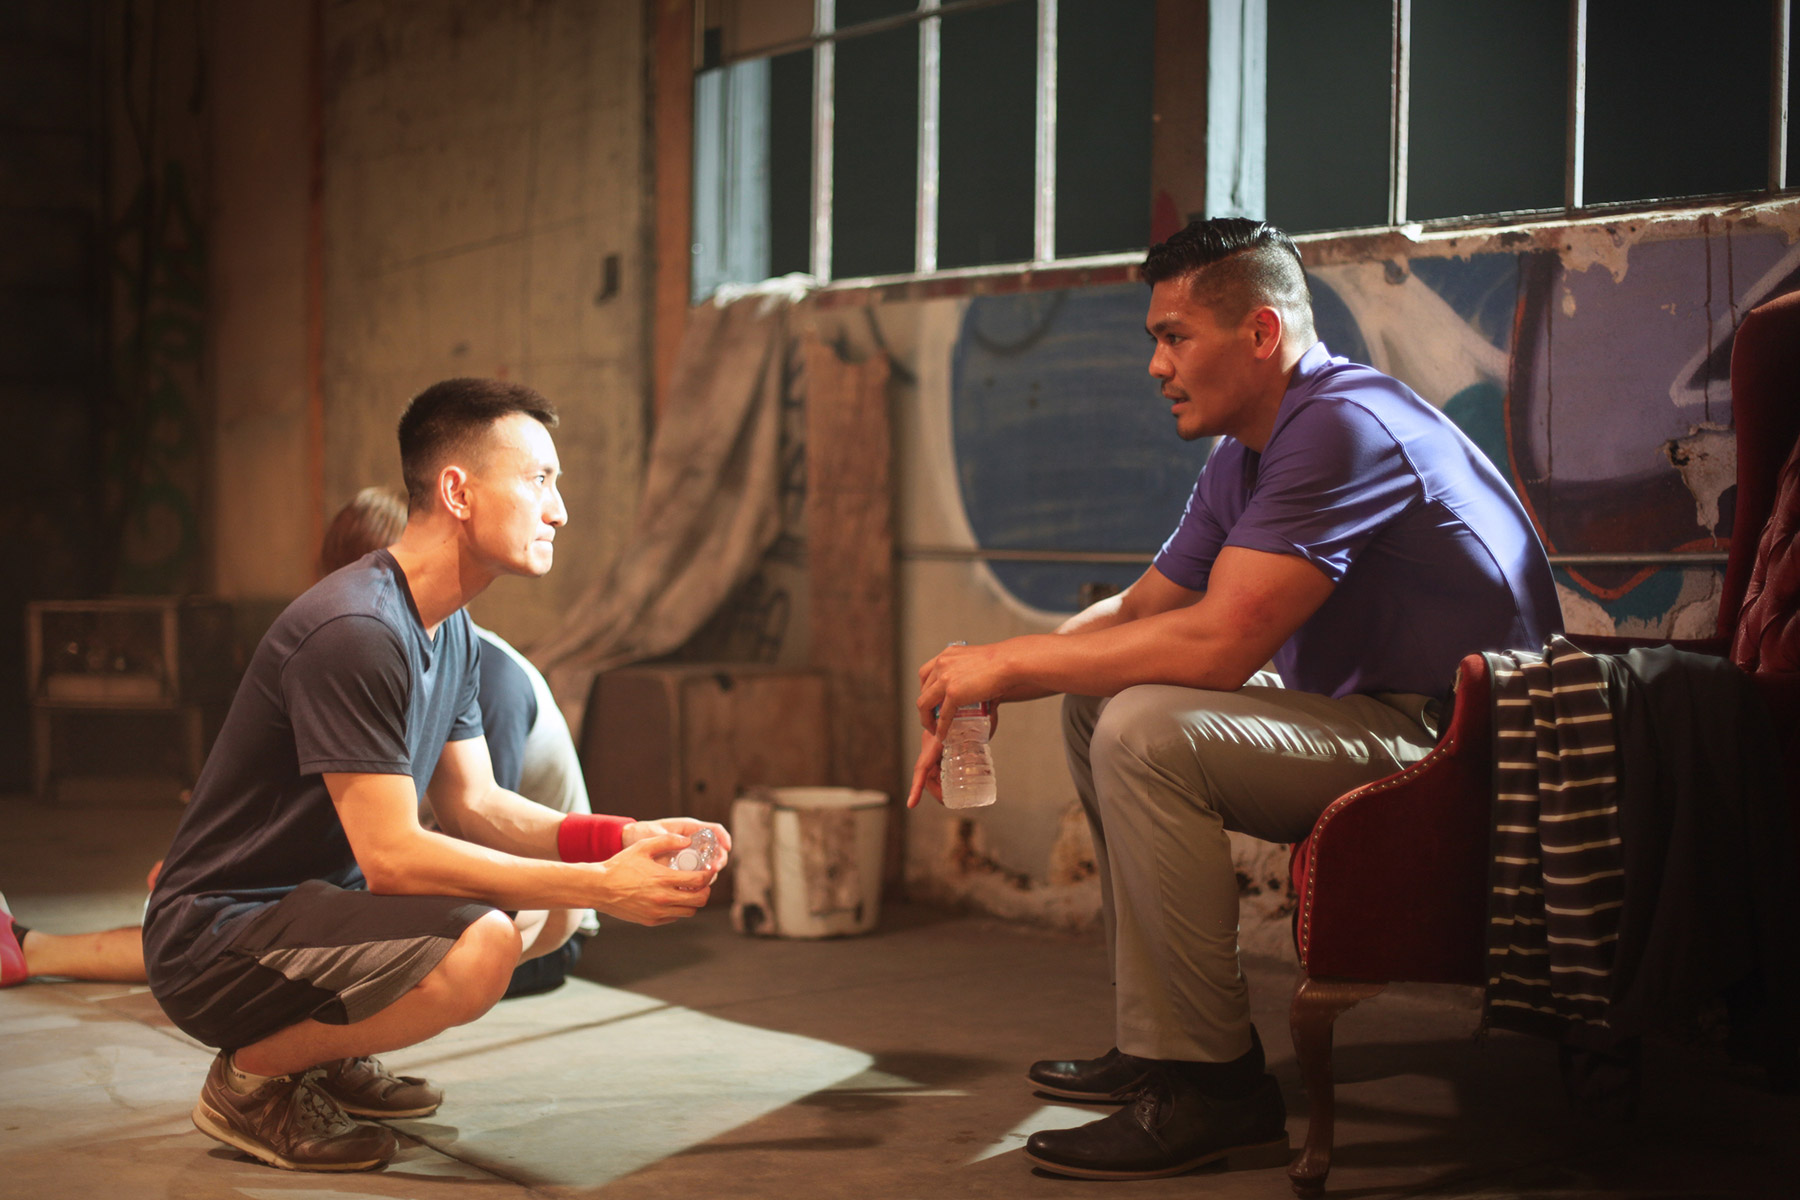 Director Tran Quoc Bao and Action Director/Actor Ken Quitugua